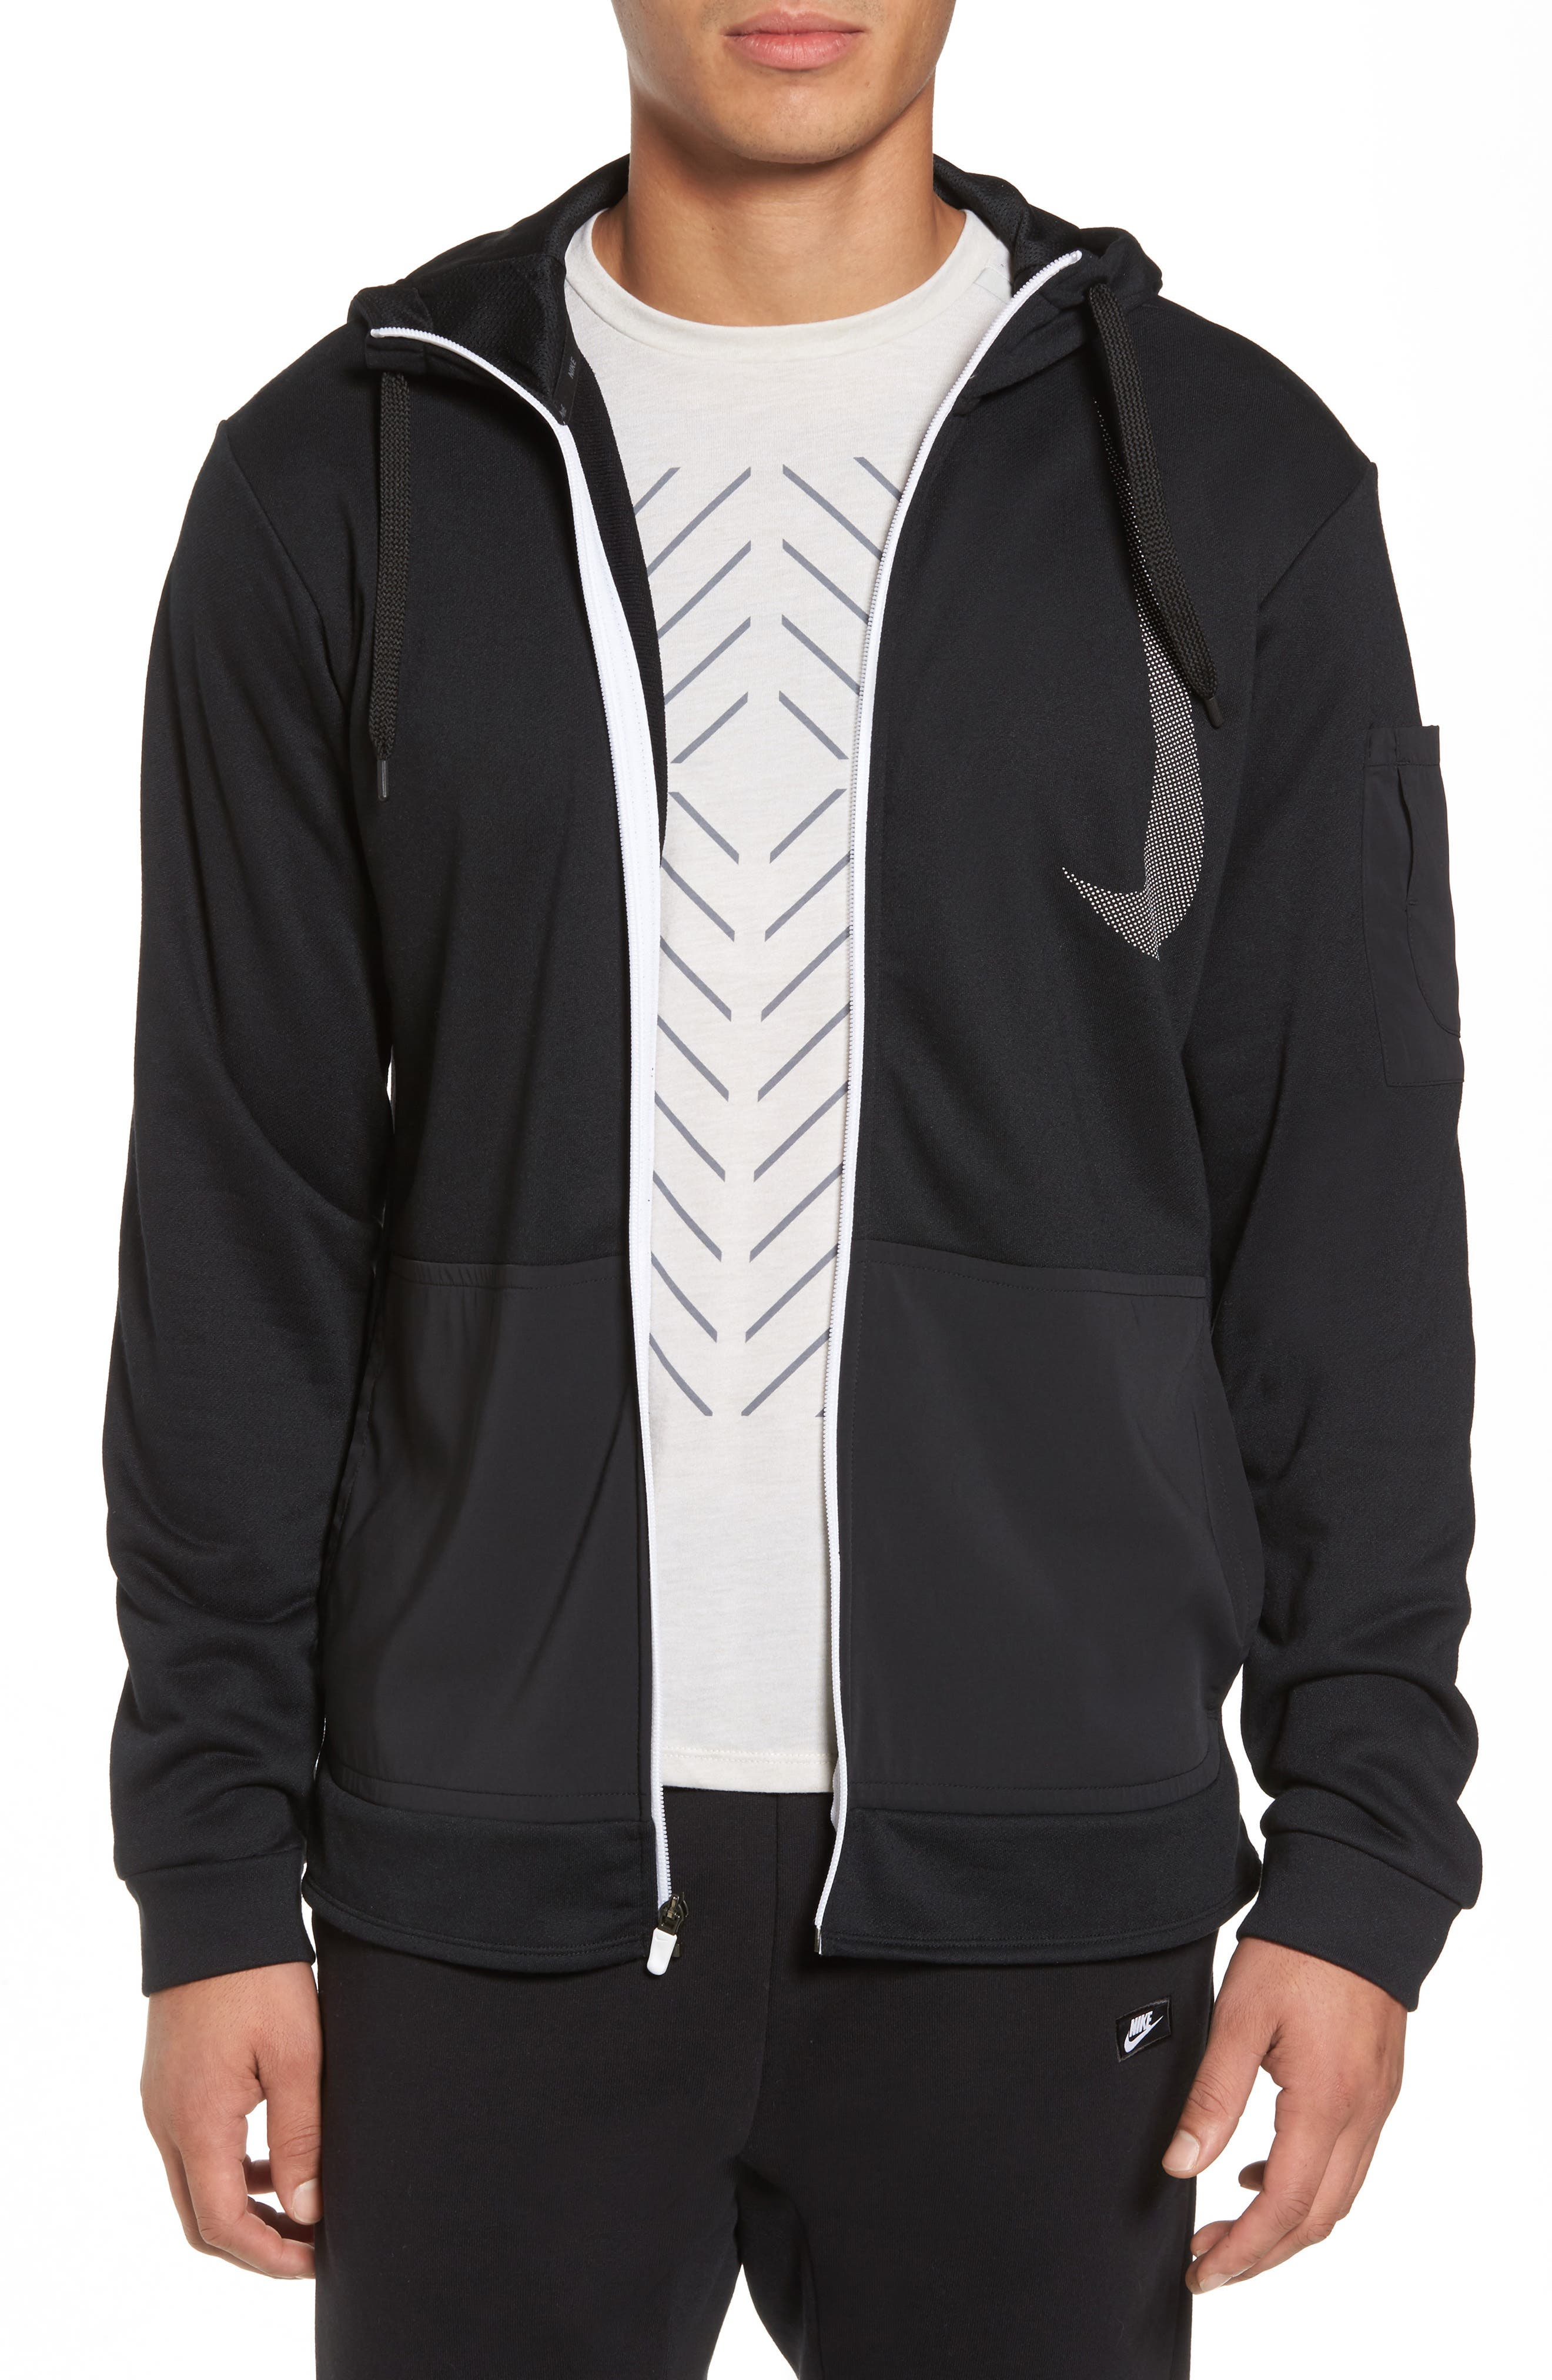 Alternate Image 1 Selected - Nike Training Dry PX Zip Hoodie